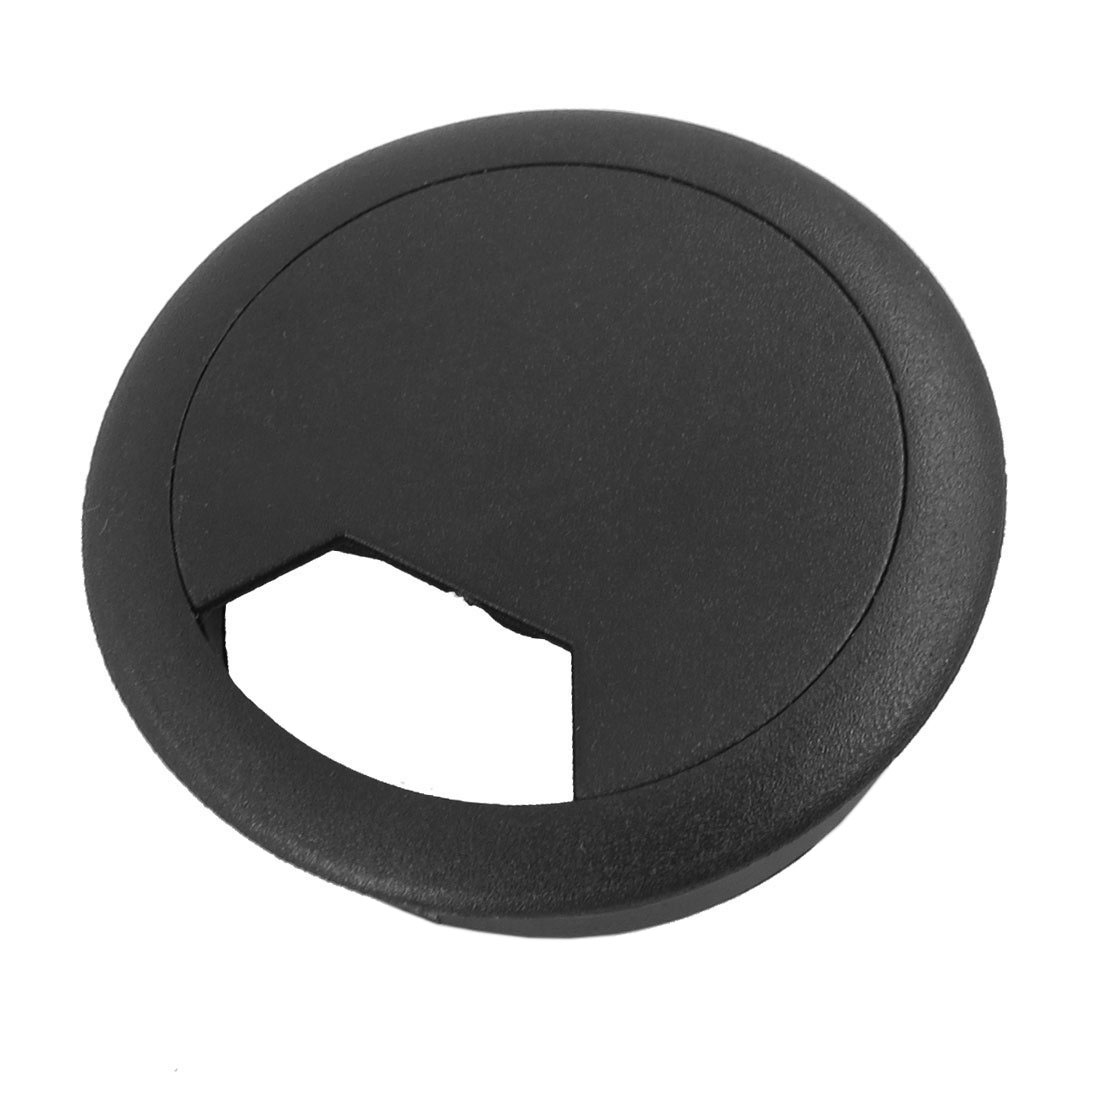 2 Pcs 50mm Diameter Desk Wire Cord Cable Grommets Hole Cover Black Vivid And Great In Style